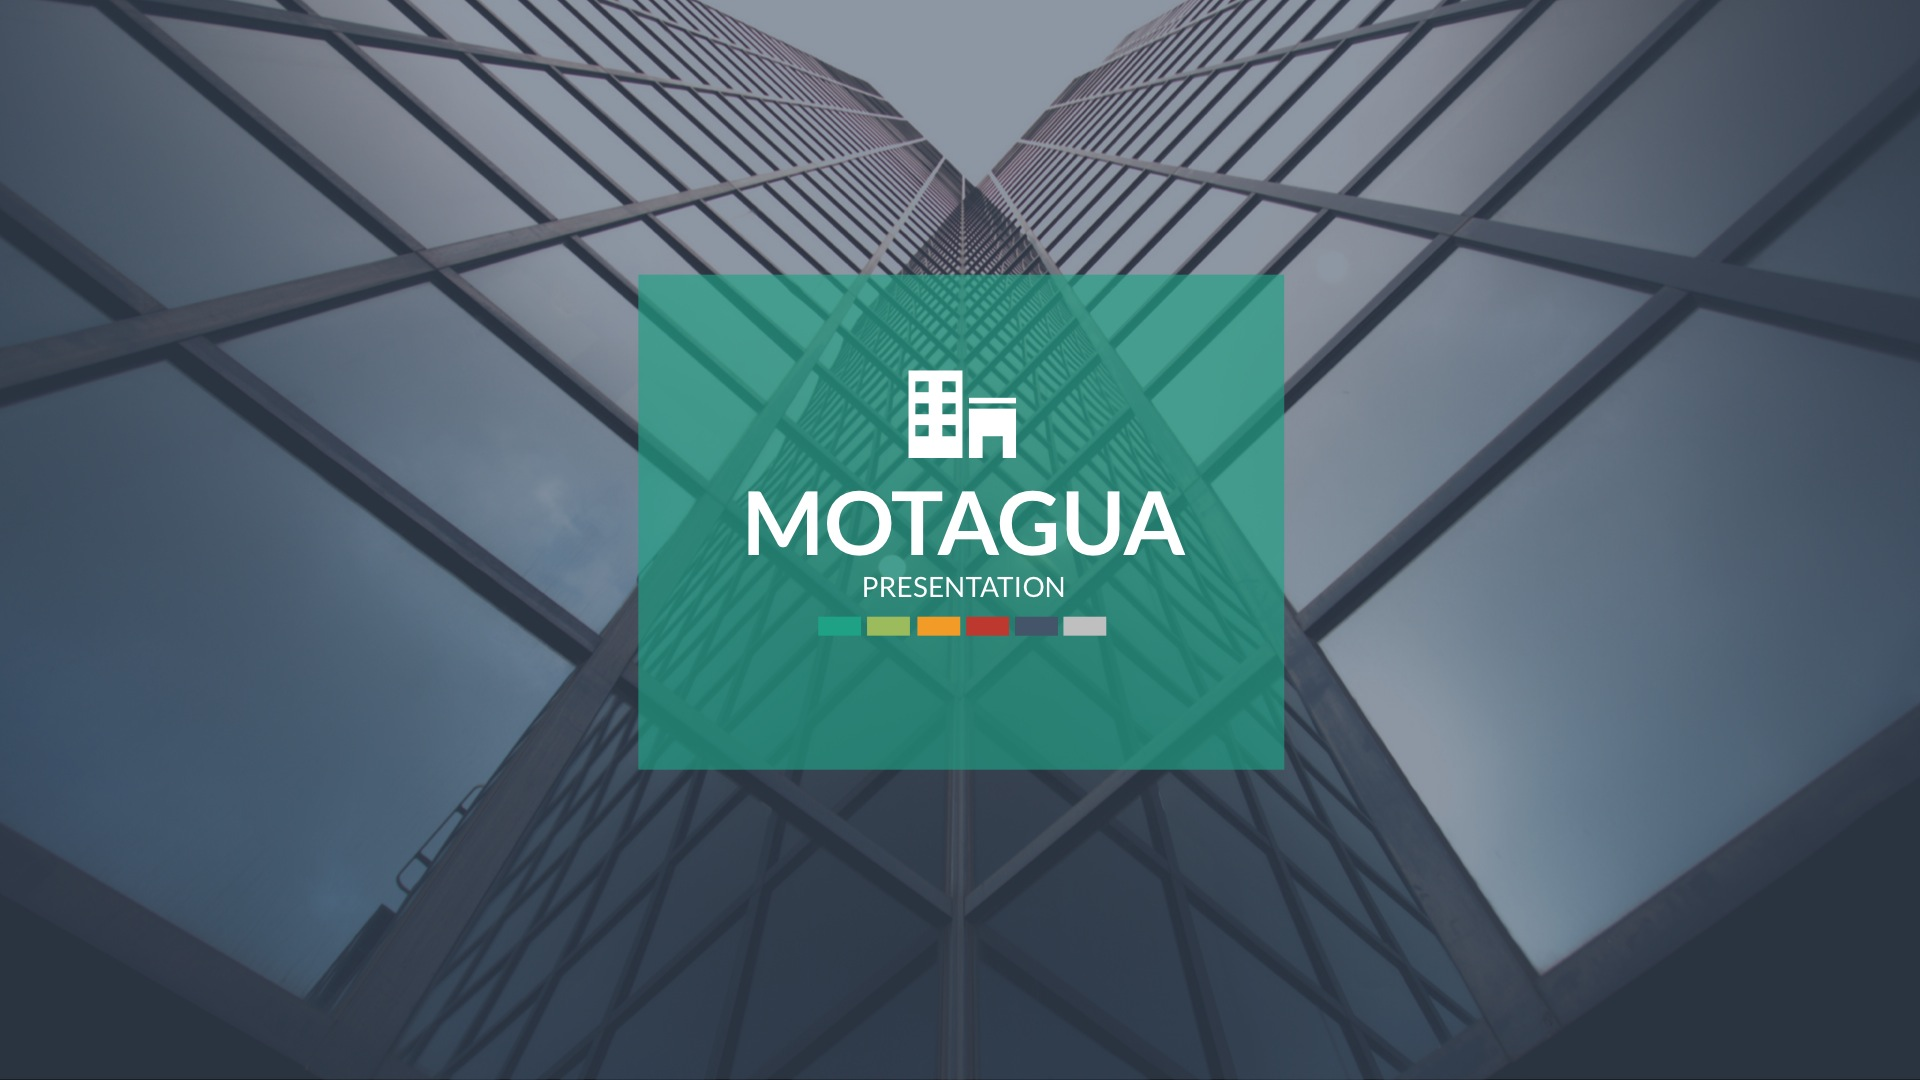 10 powerpoint business templates to wow your audience the multipurpose powerpoint business template from motagua wajeb Image collections